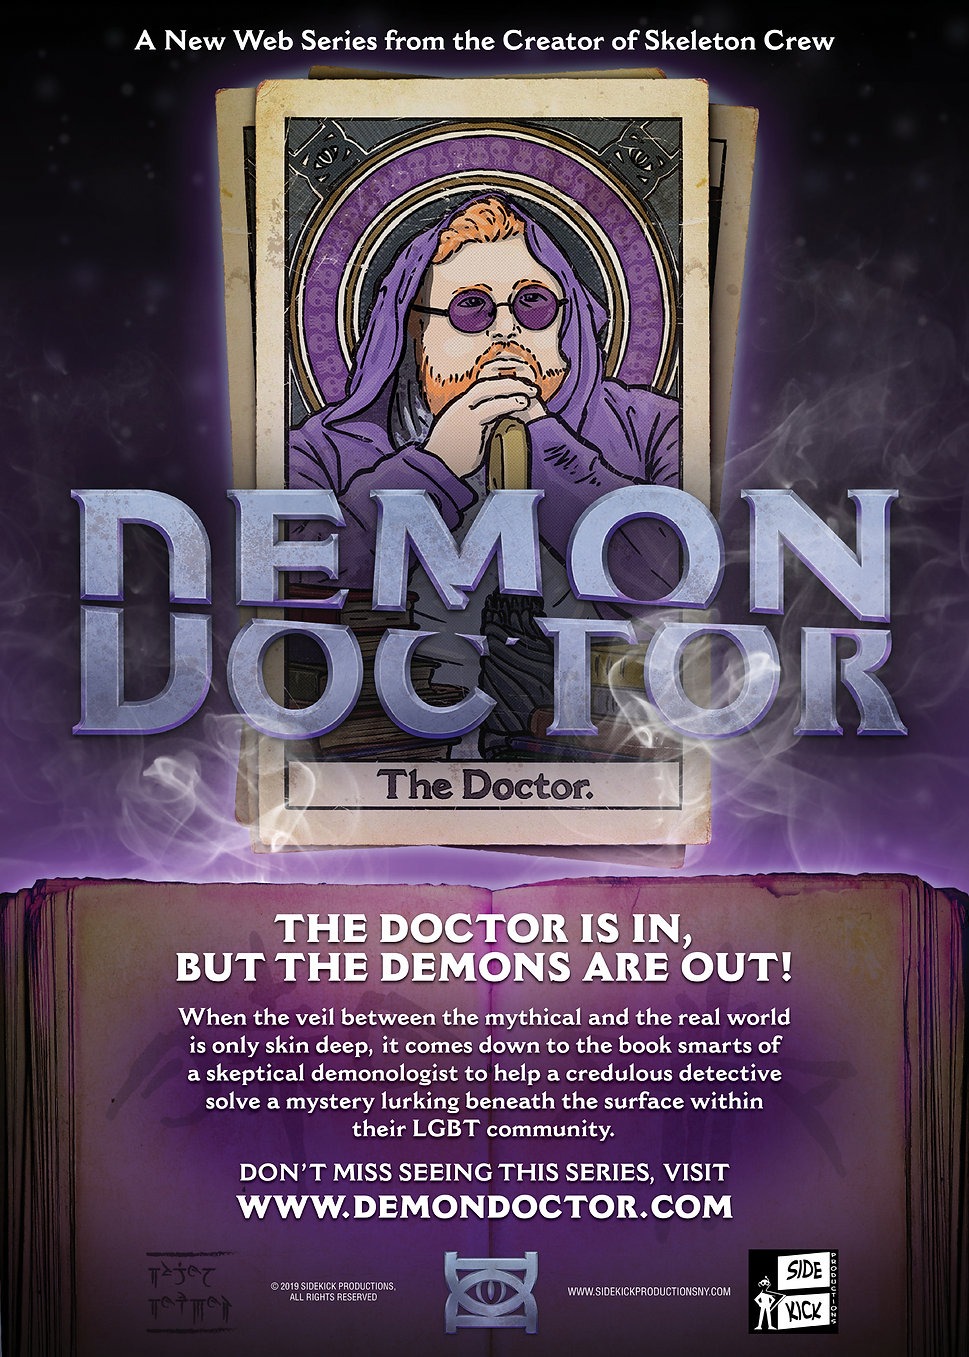 Demon Doctor - The doctor is in, but the demons are out!  When the veil between the mythical and the real world is only skin deep, it comes down to the book smarts of a skeptical demonologist to help a credulous detective solve a mystery lurking beneath the surface within their LGBT community.